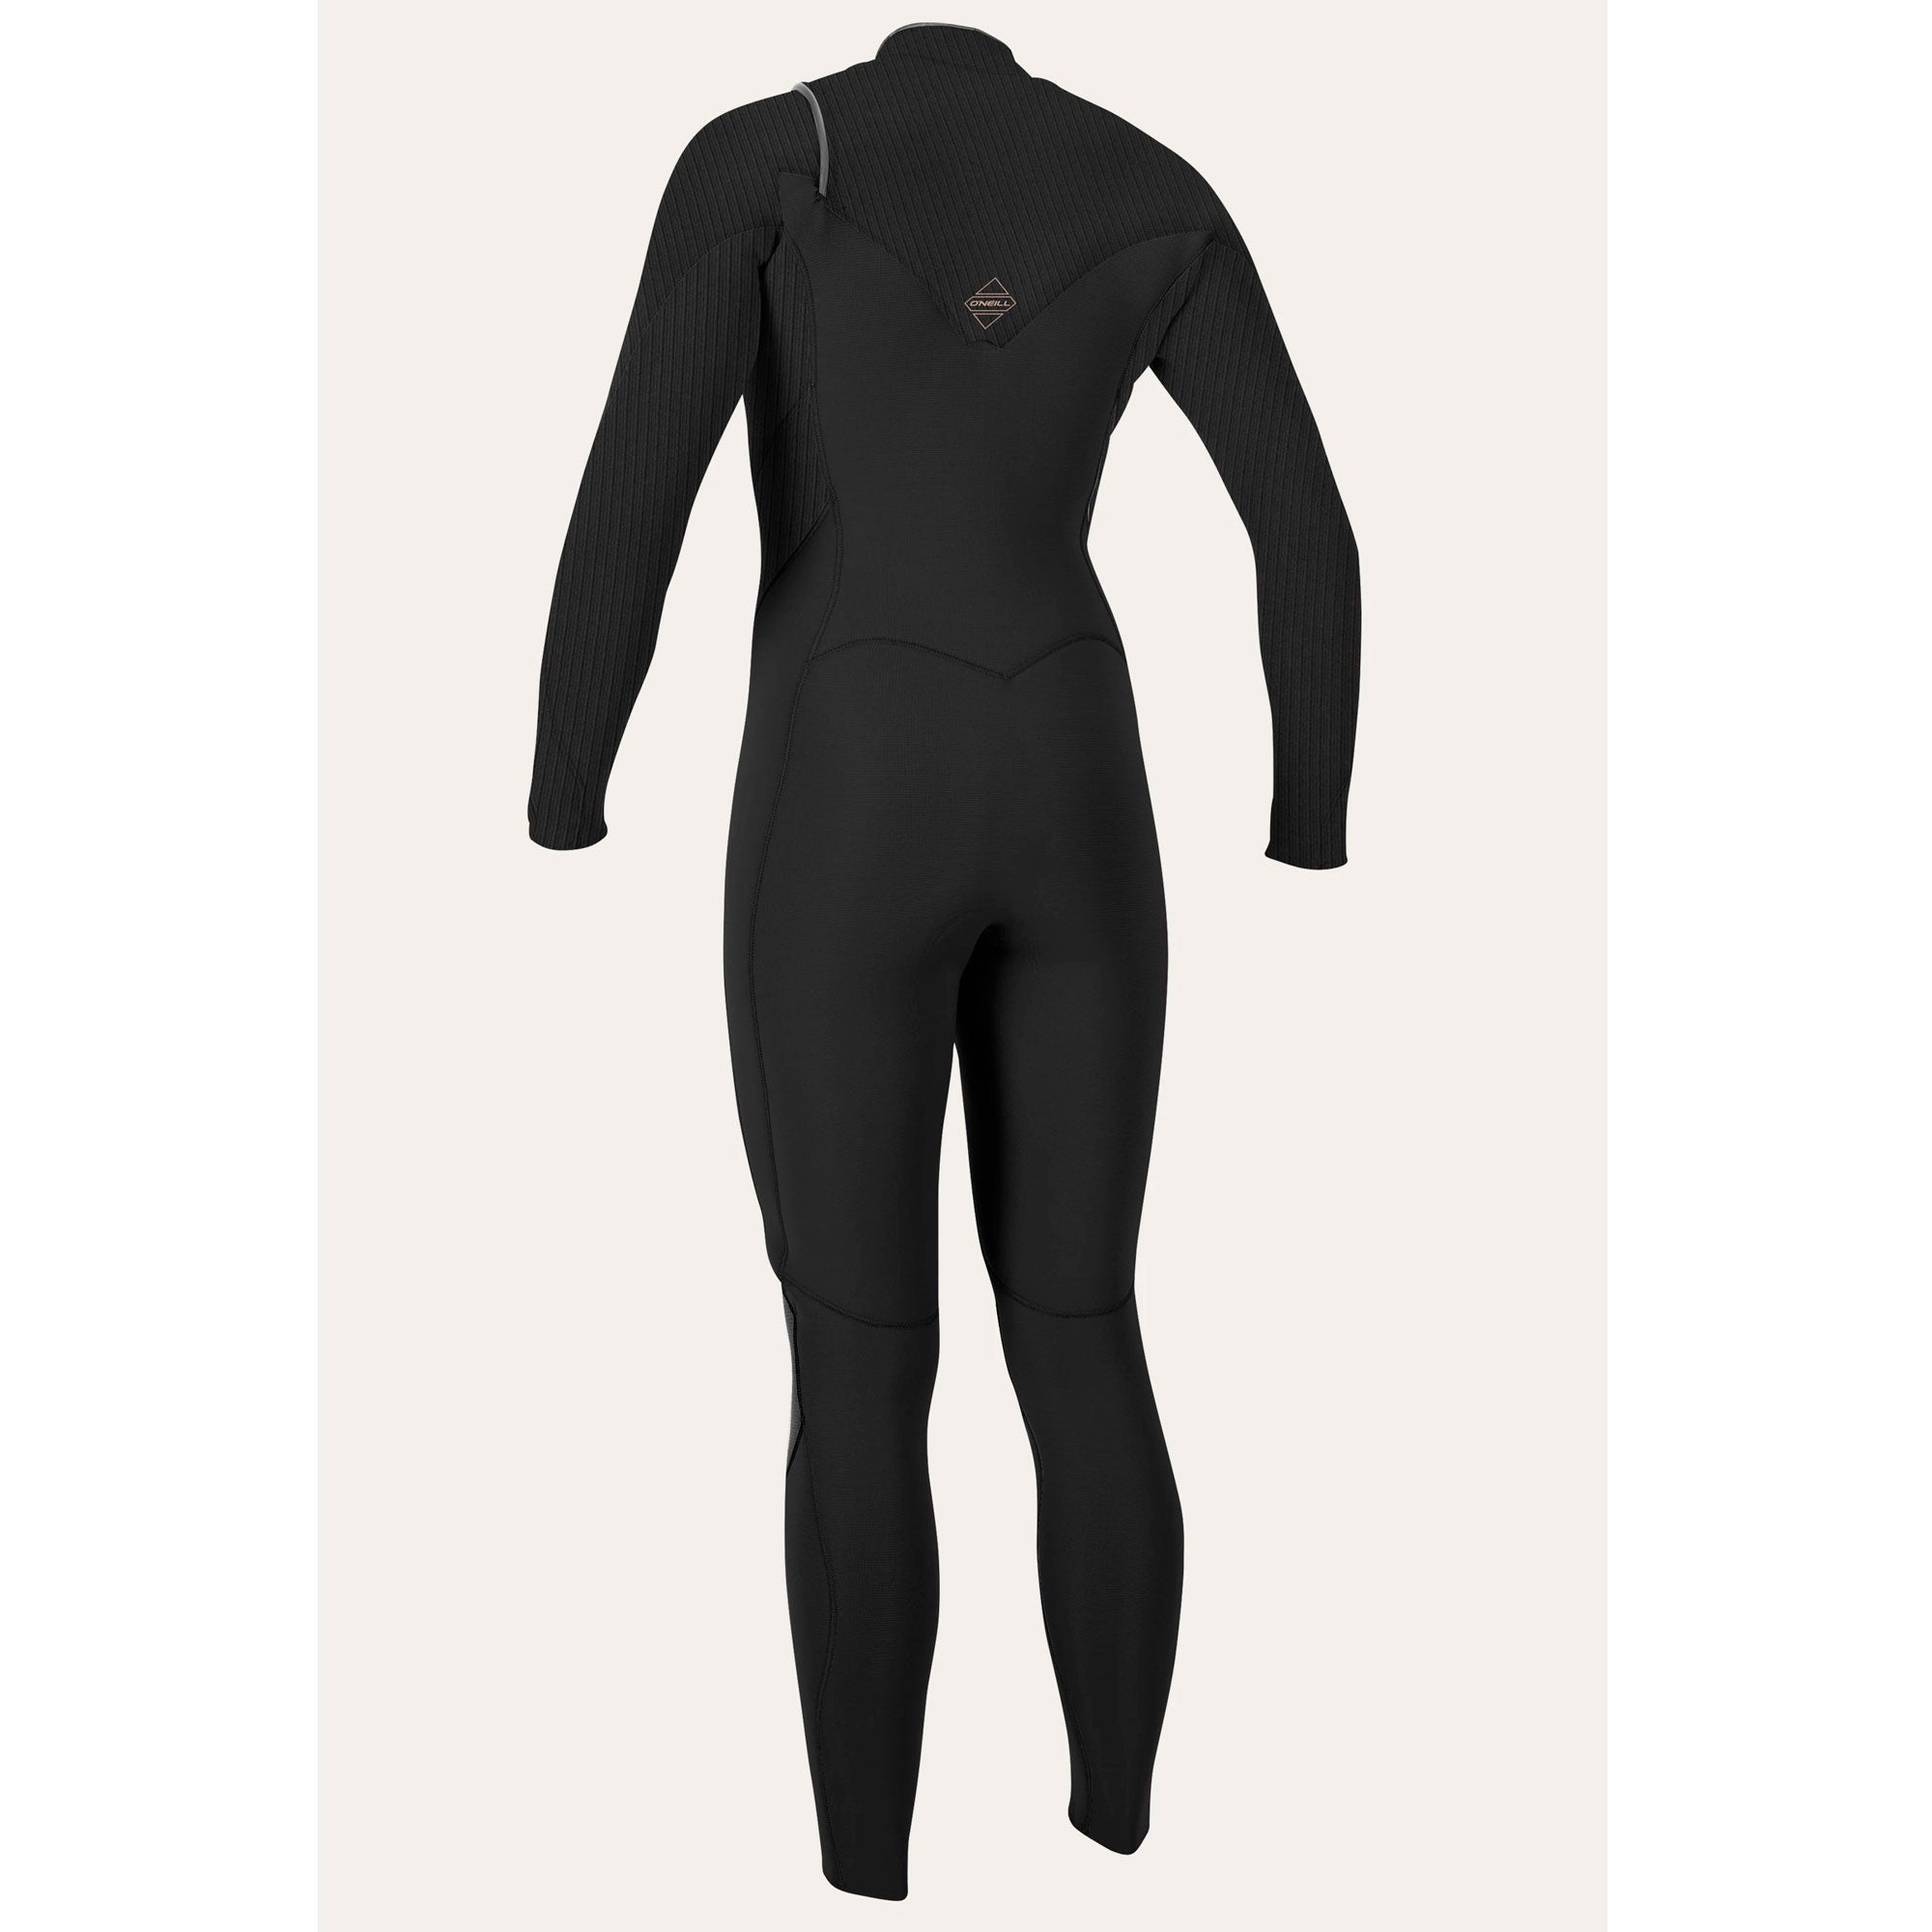 O'Neill Hyperfreak TB3 3/2+ mm Women's Chest Zip Wetsuit